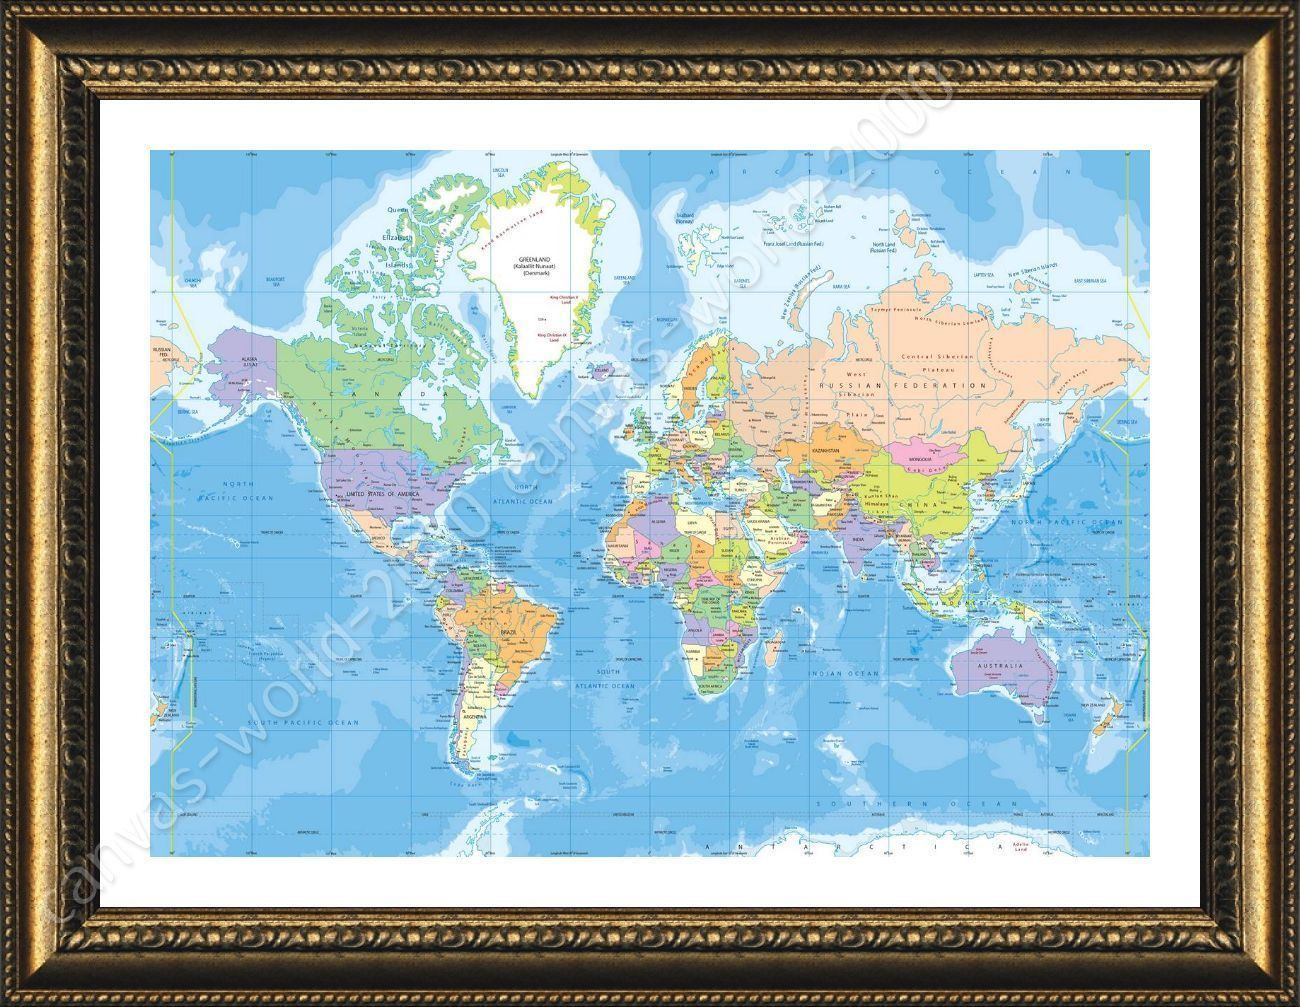 Poster political modern world map framed wall decor oil paintings prints framed poster political modern world map framed wall decor oil paintings prints gumiabroncs Gallery